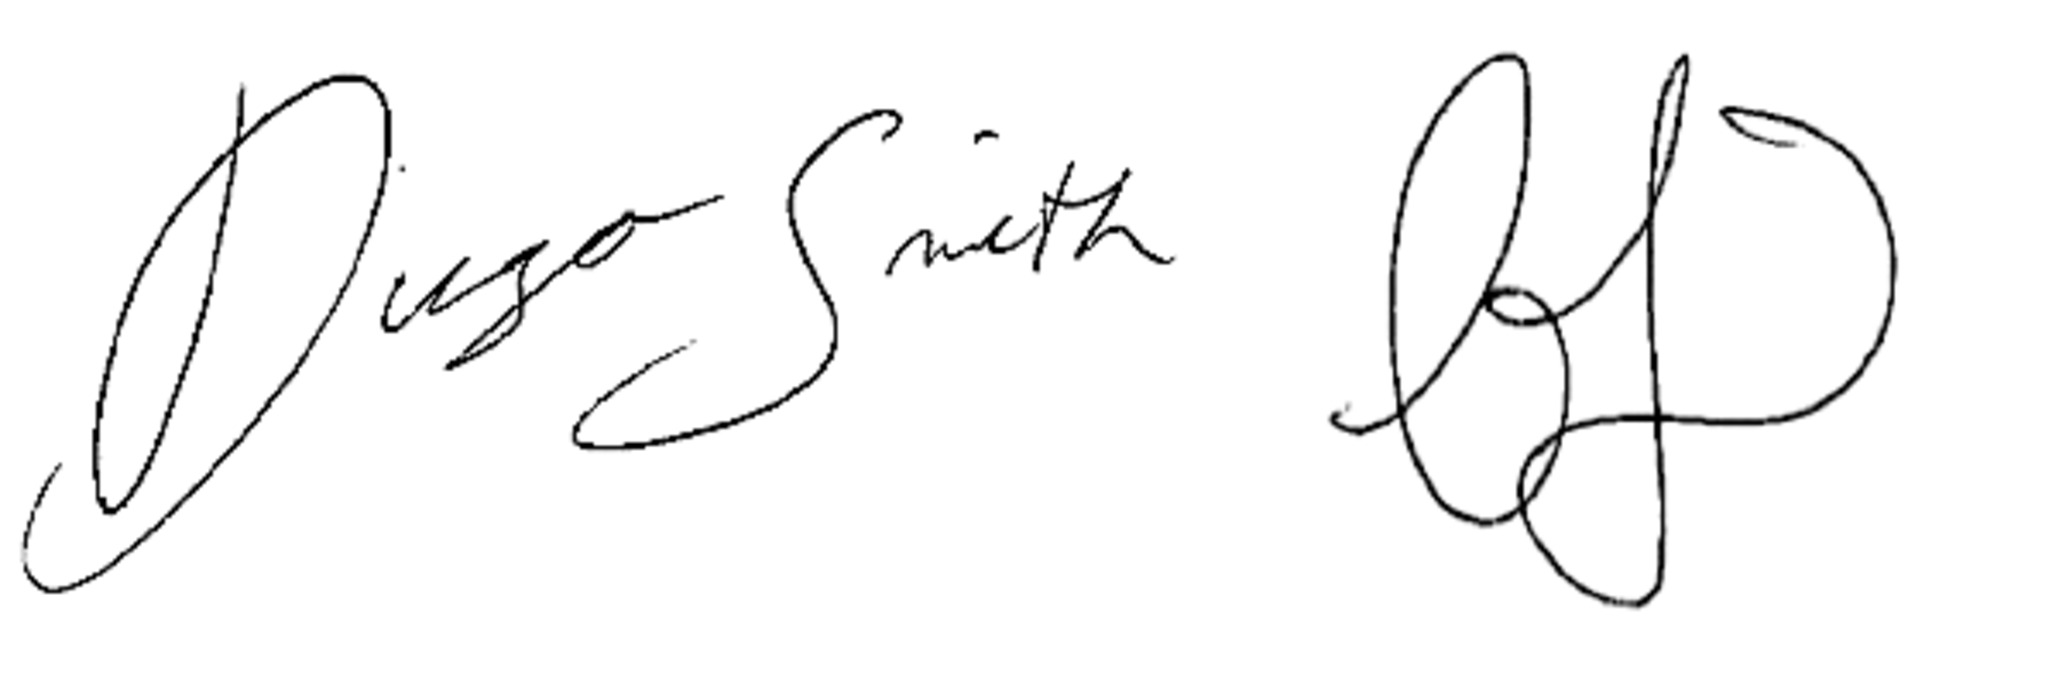 How To Make Electronic Signature In Paint